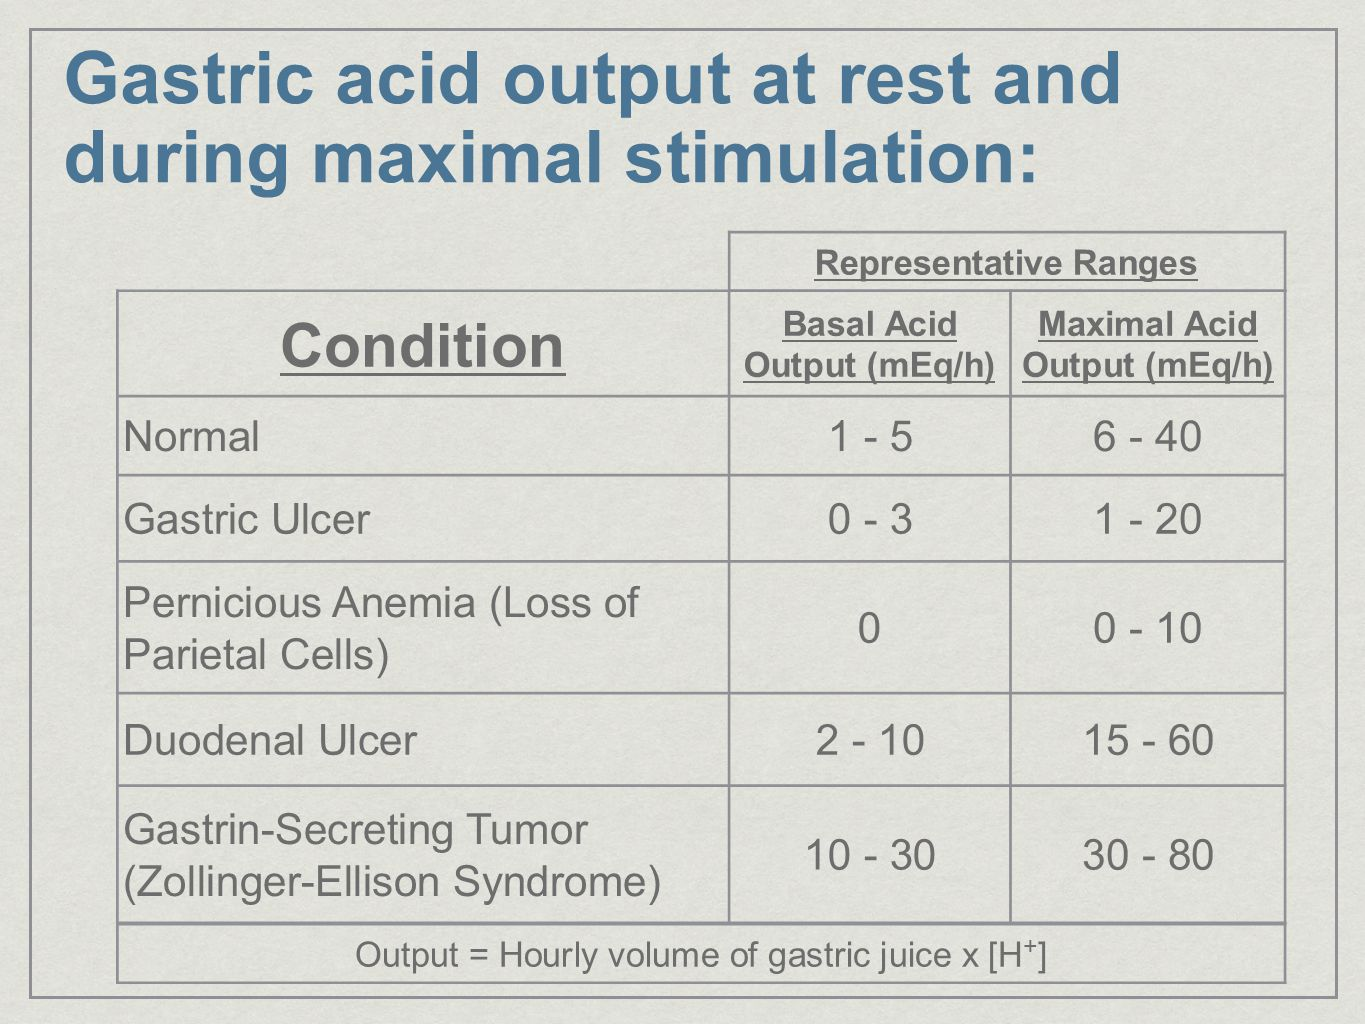 Gastric acid output at rest and during maximal stimulation: Condition Basal Acid Output (mEq/h) Maximal Acid Output (mEq/h) Normal1 - 56 - 40 Gastric Ulcer0 - 31 - 20 Pernicious Anemia (Loss of Parietal Cells) 00 - 10 Duodenal Ulcer2 - 1015 - 60 Gastrin-Secreting Tumor (Zollinger-Ellison Syndrome) 10 - 3030 - 80 Representative Ranges Output = Hourly volume of gastric juice x [H + ]